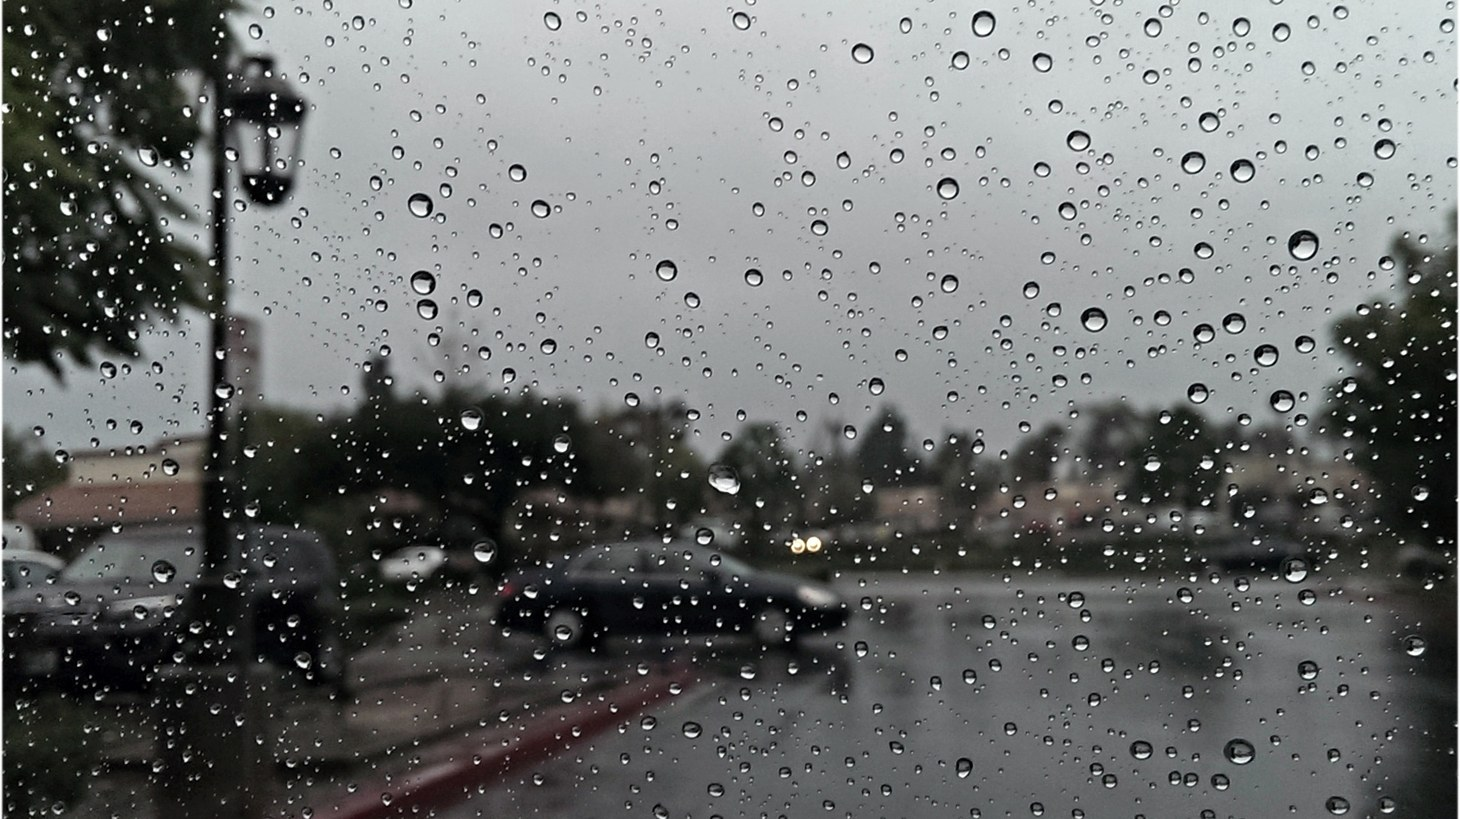 Southern California downpour.